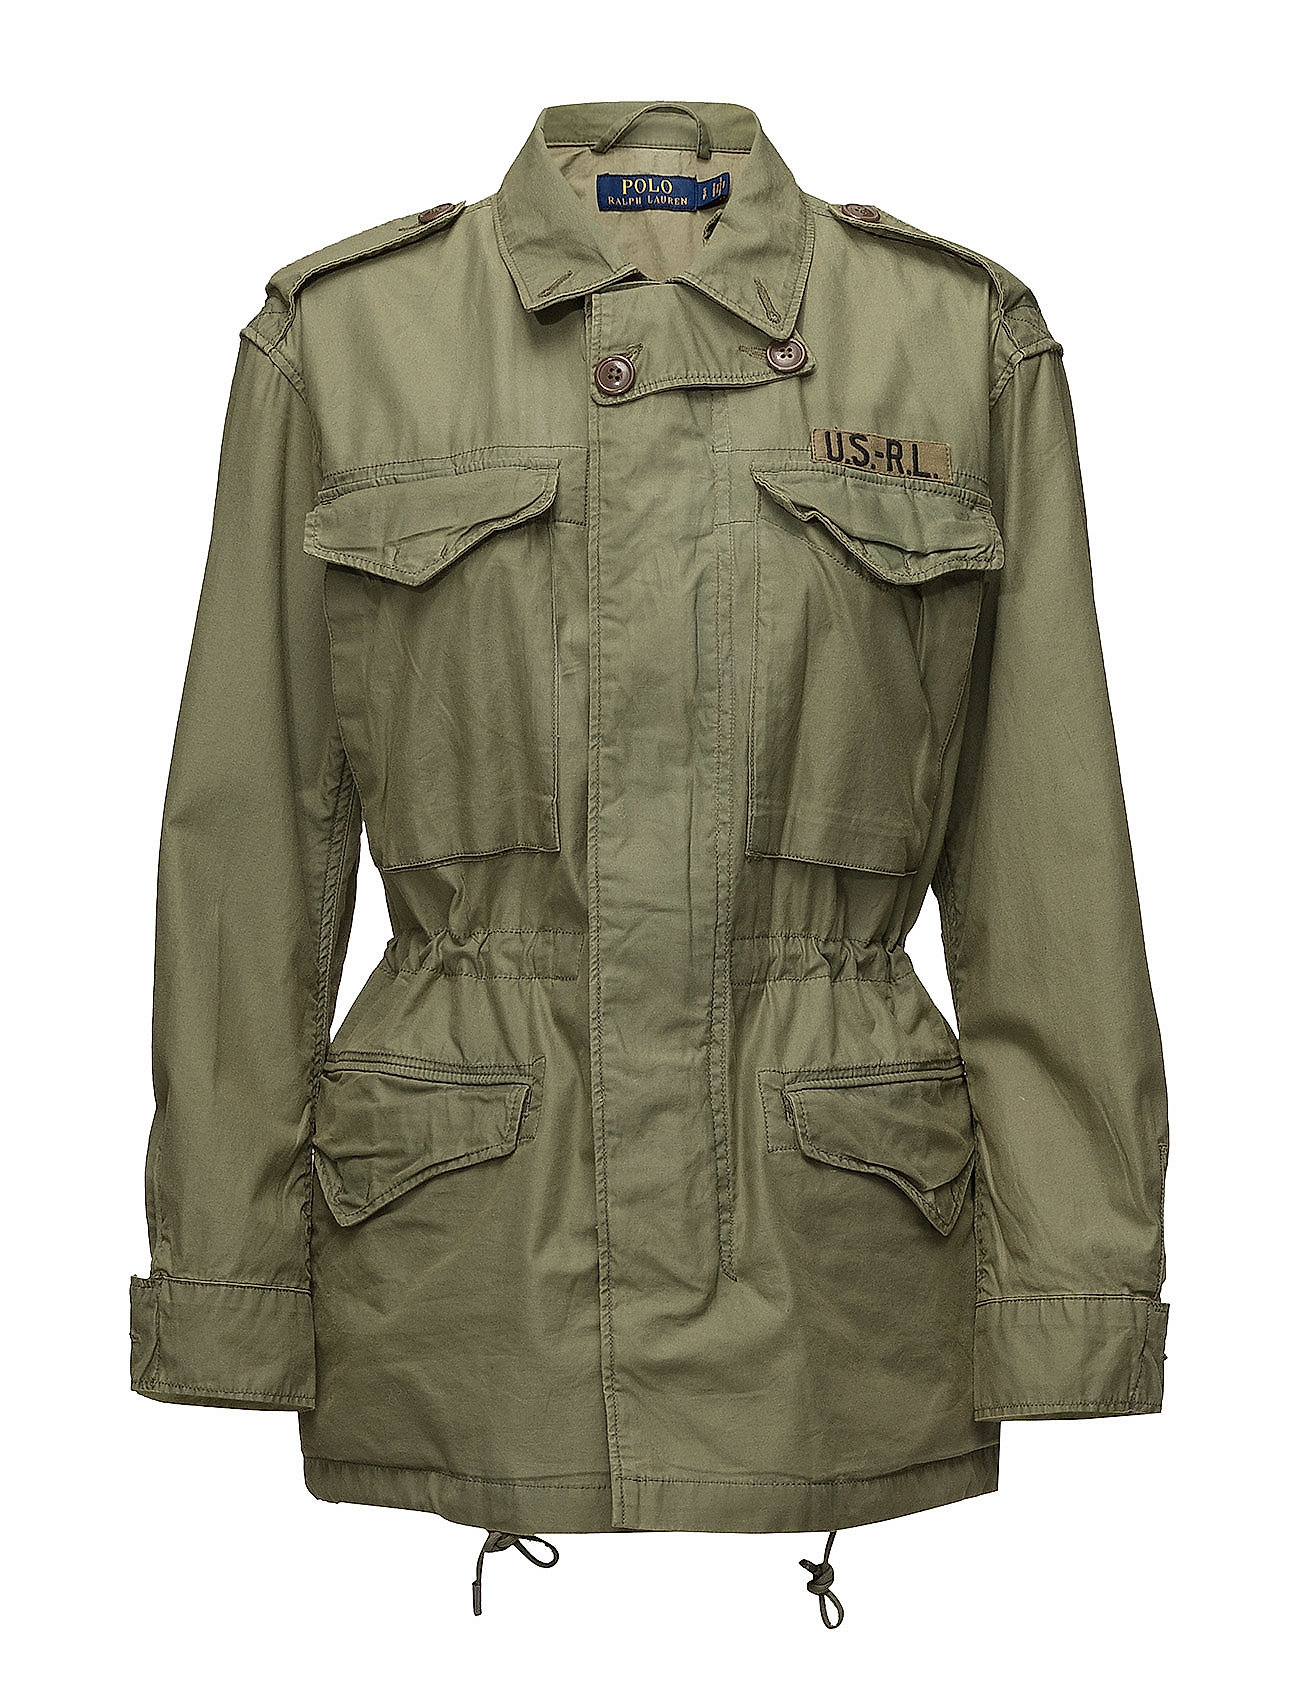 0d8bf09c2c8a8 Twill Military Jacket (Army Olive) (£249) - Polo Ralph Lauren ...